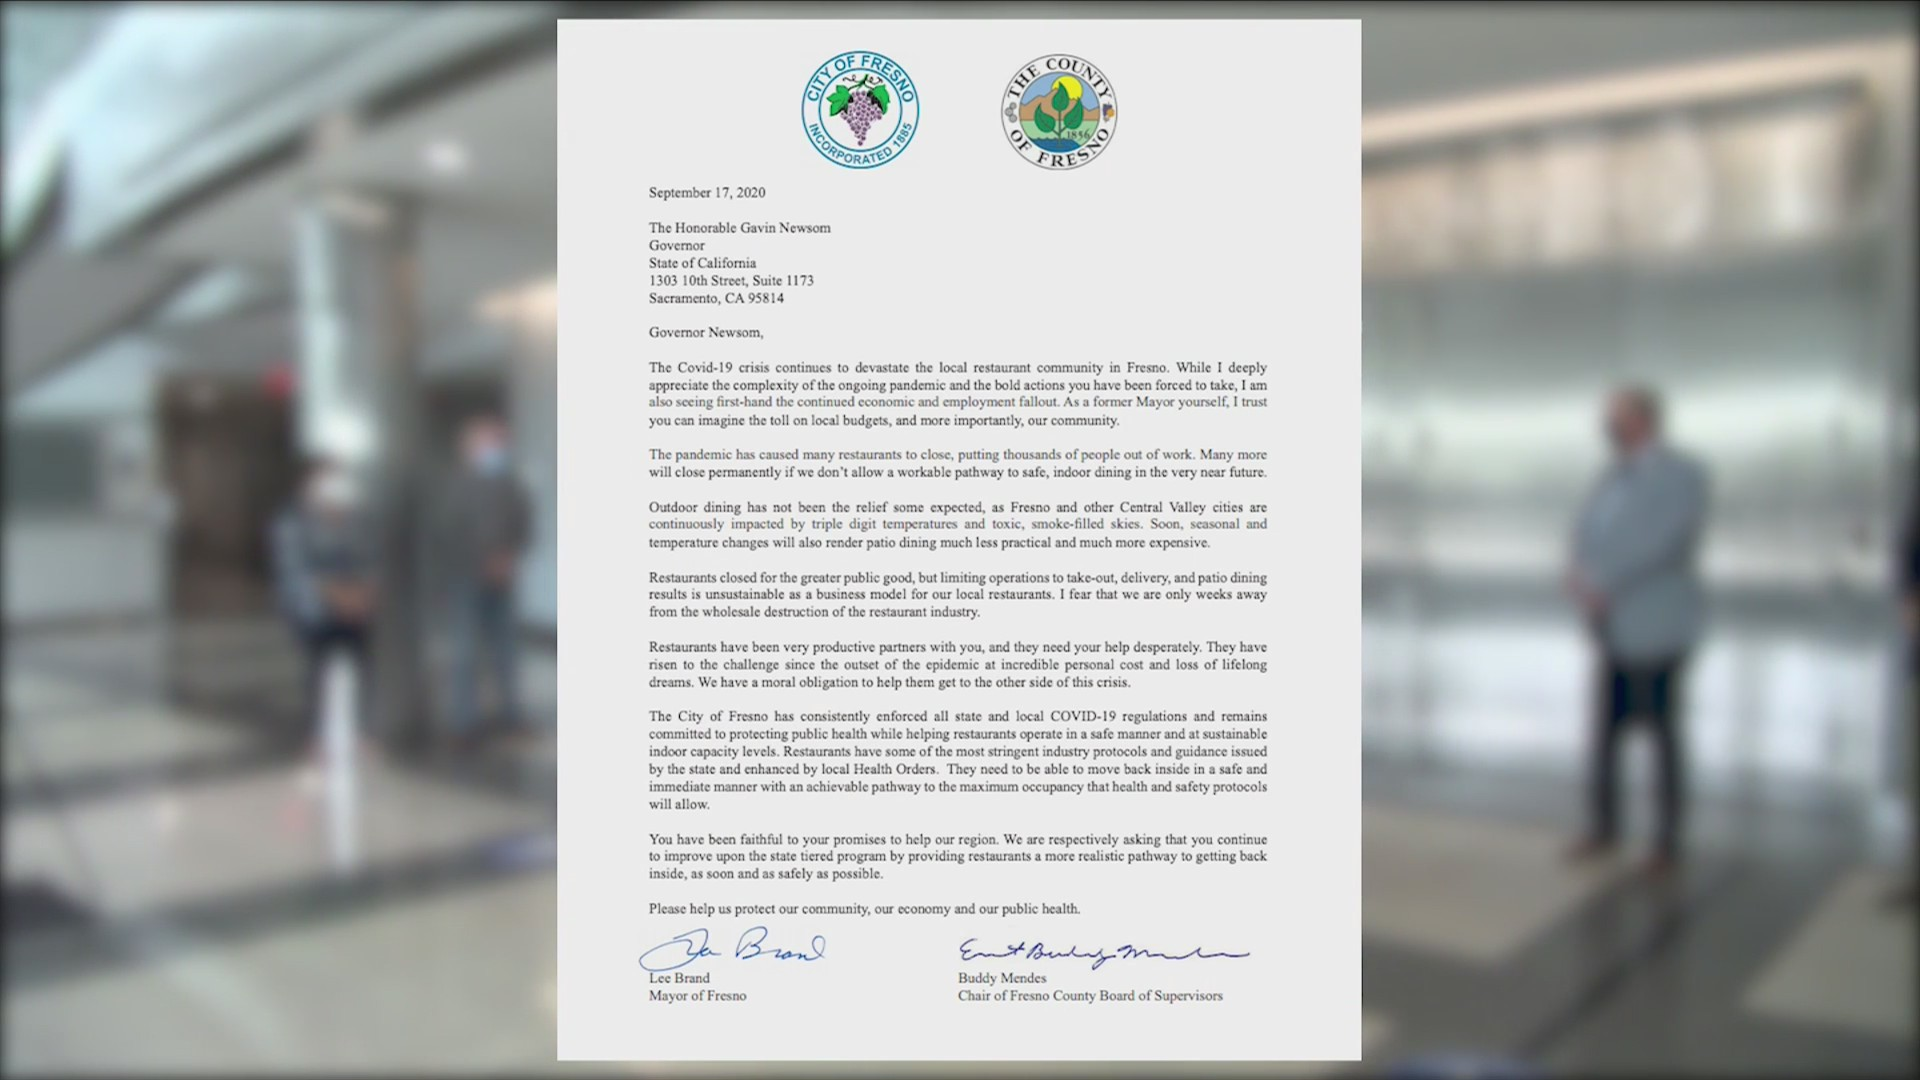 Fresno city and county leaders ask Gov. Newsom to allow restaurants to reopen indoor dining